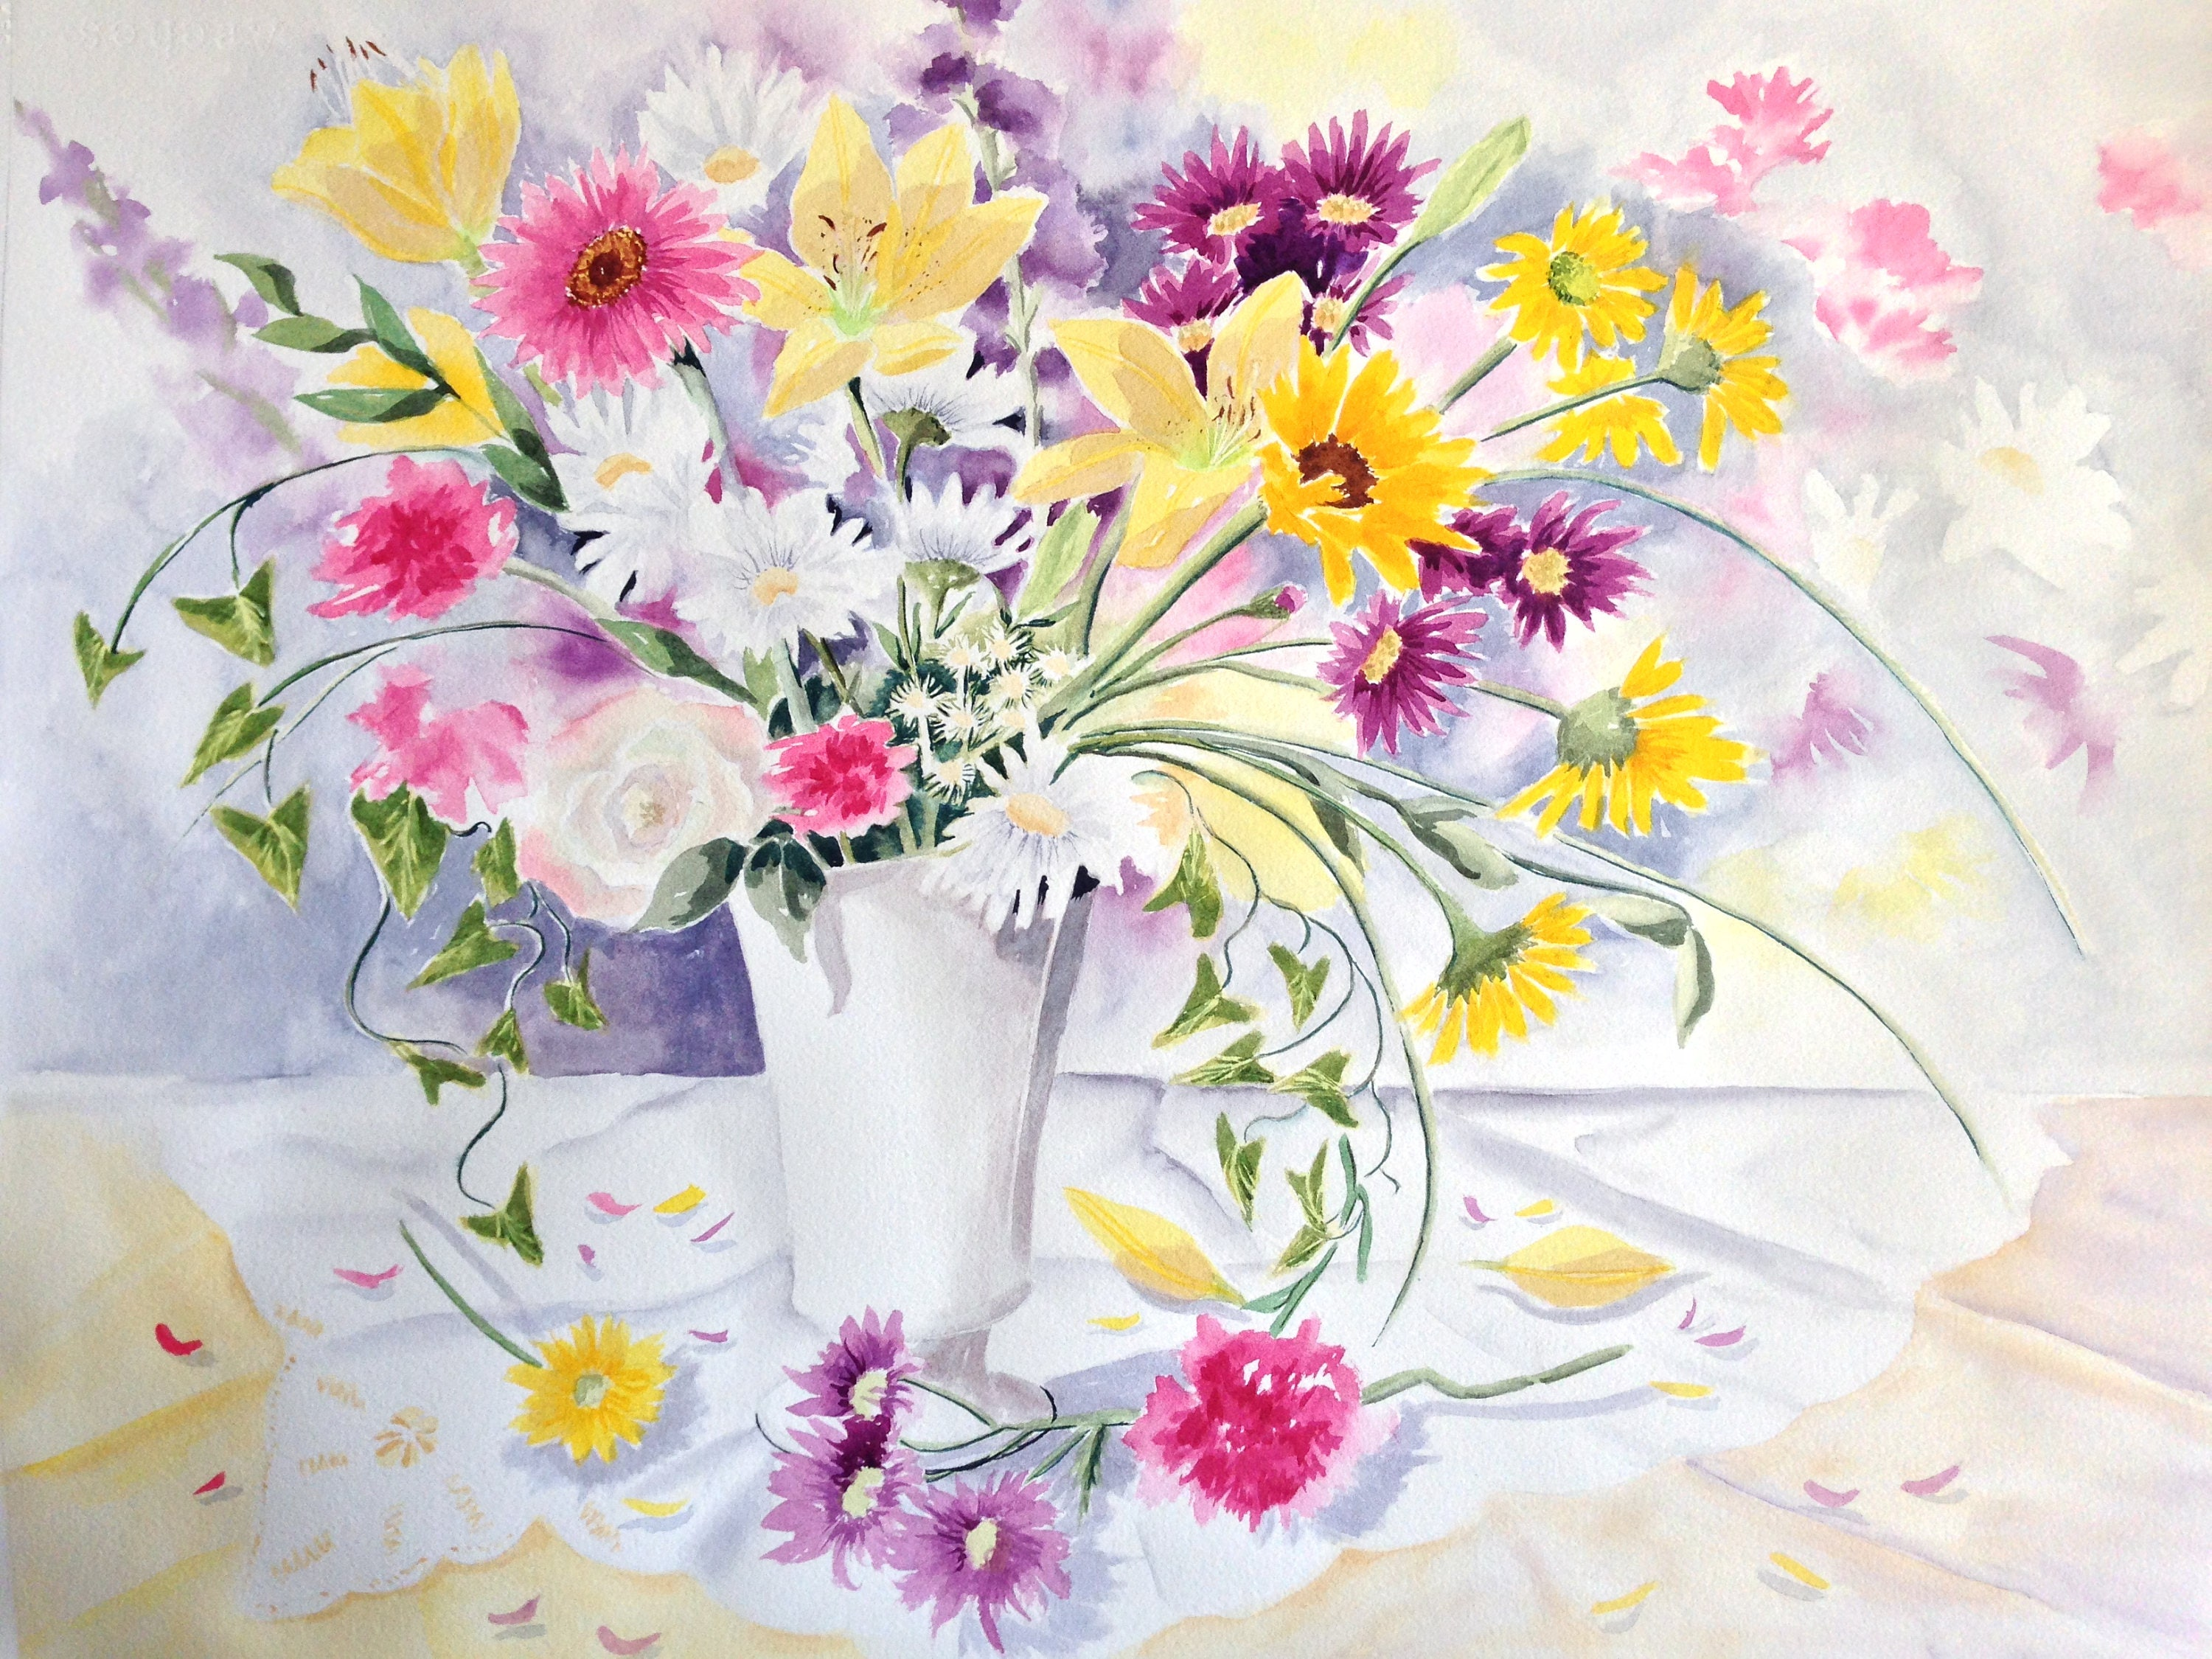 Flower Painting In Watercolor Yellow Lilies Daisies Sunflowers